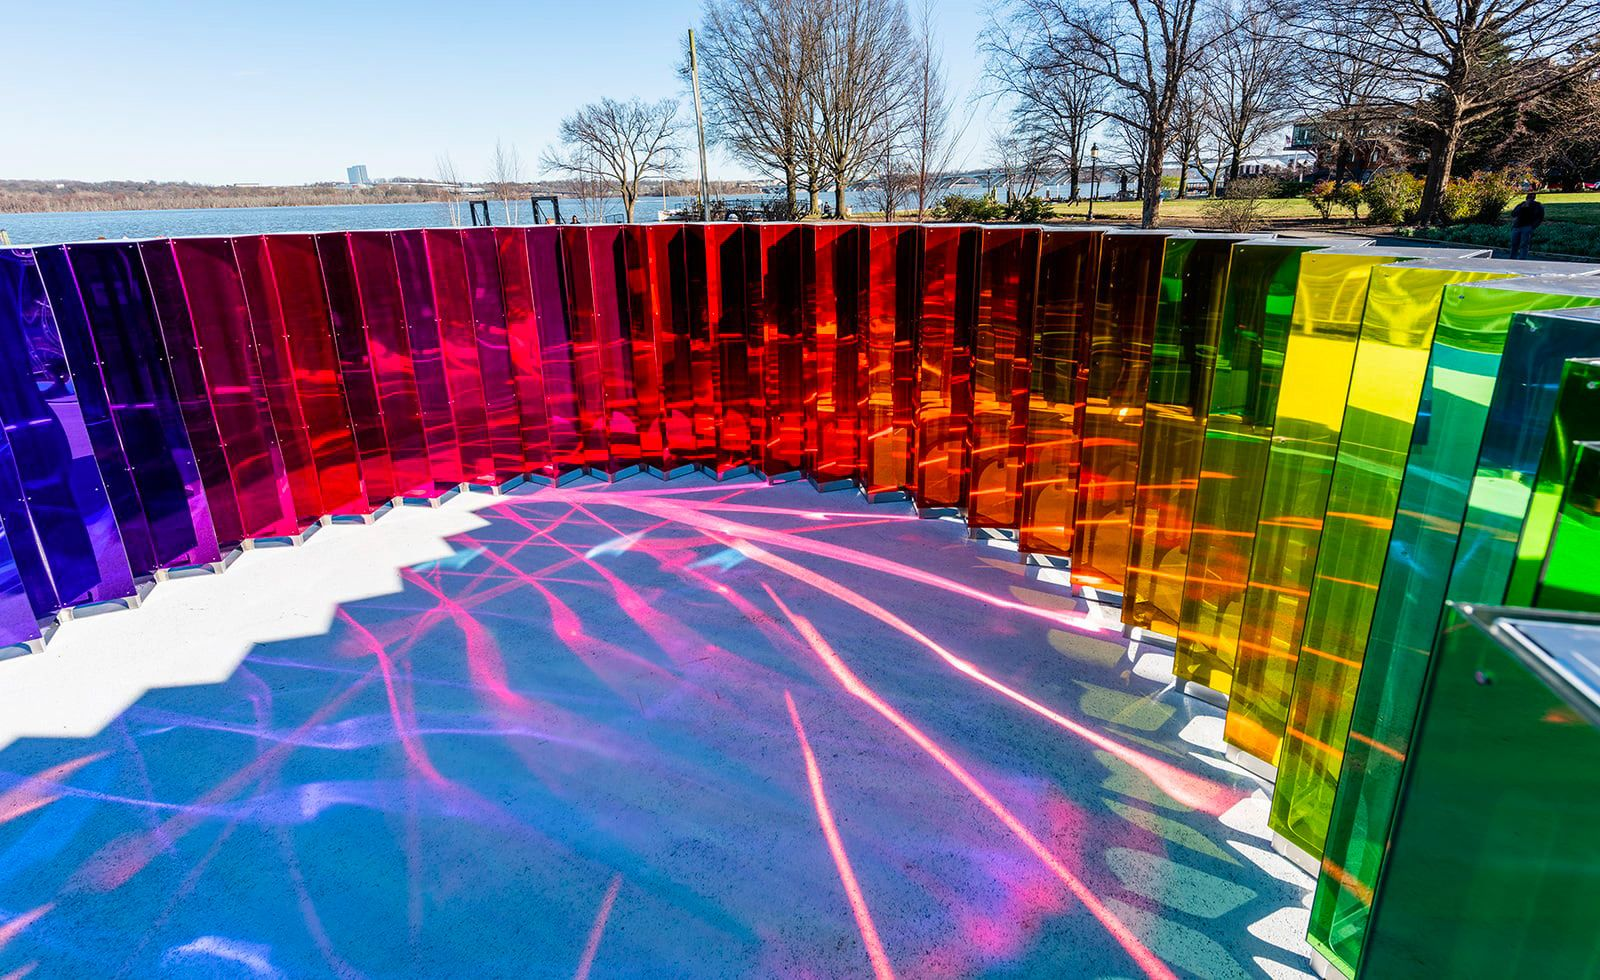 Dozens Of Mirrored Prisms Respond To Movement With